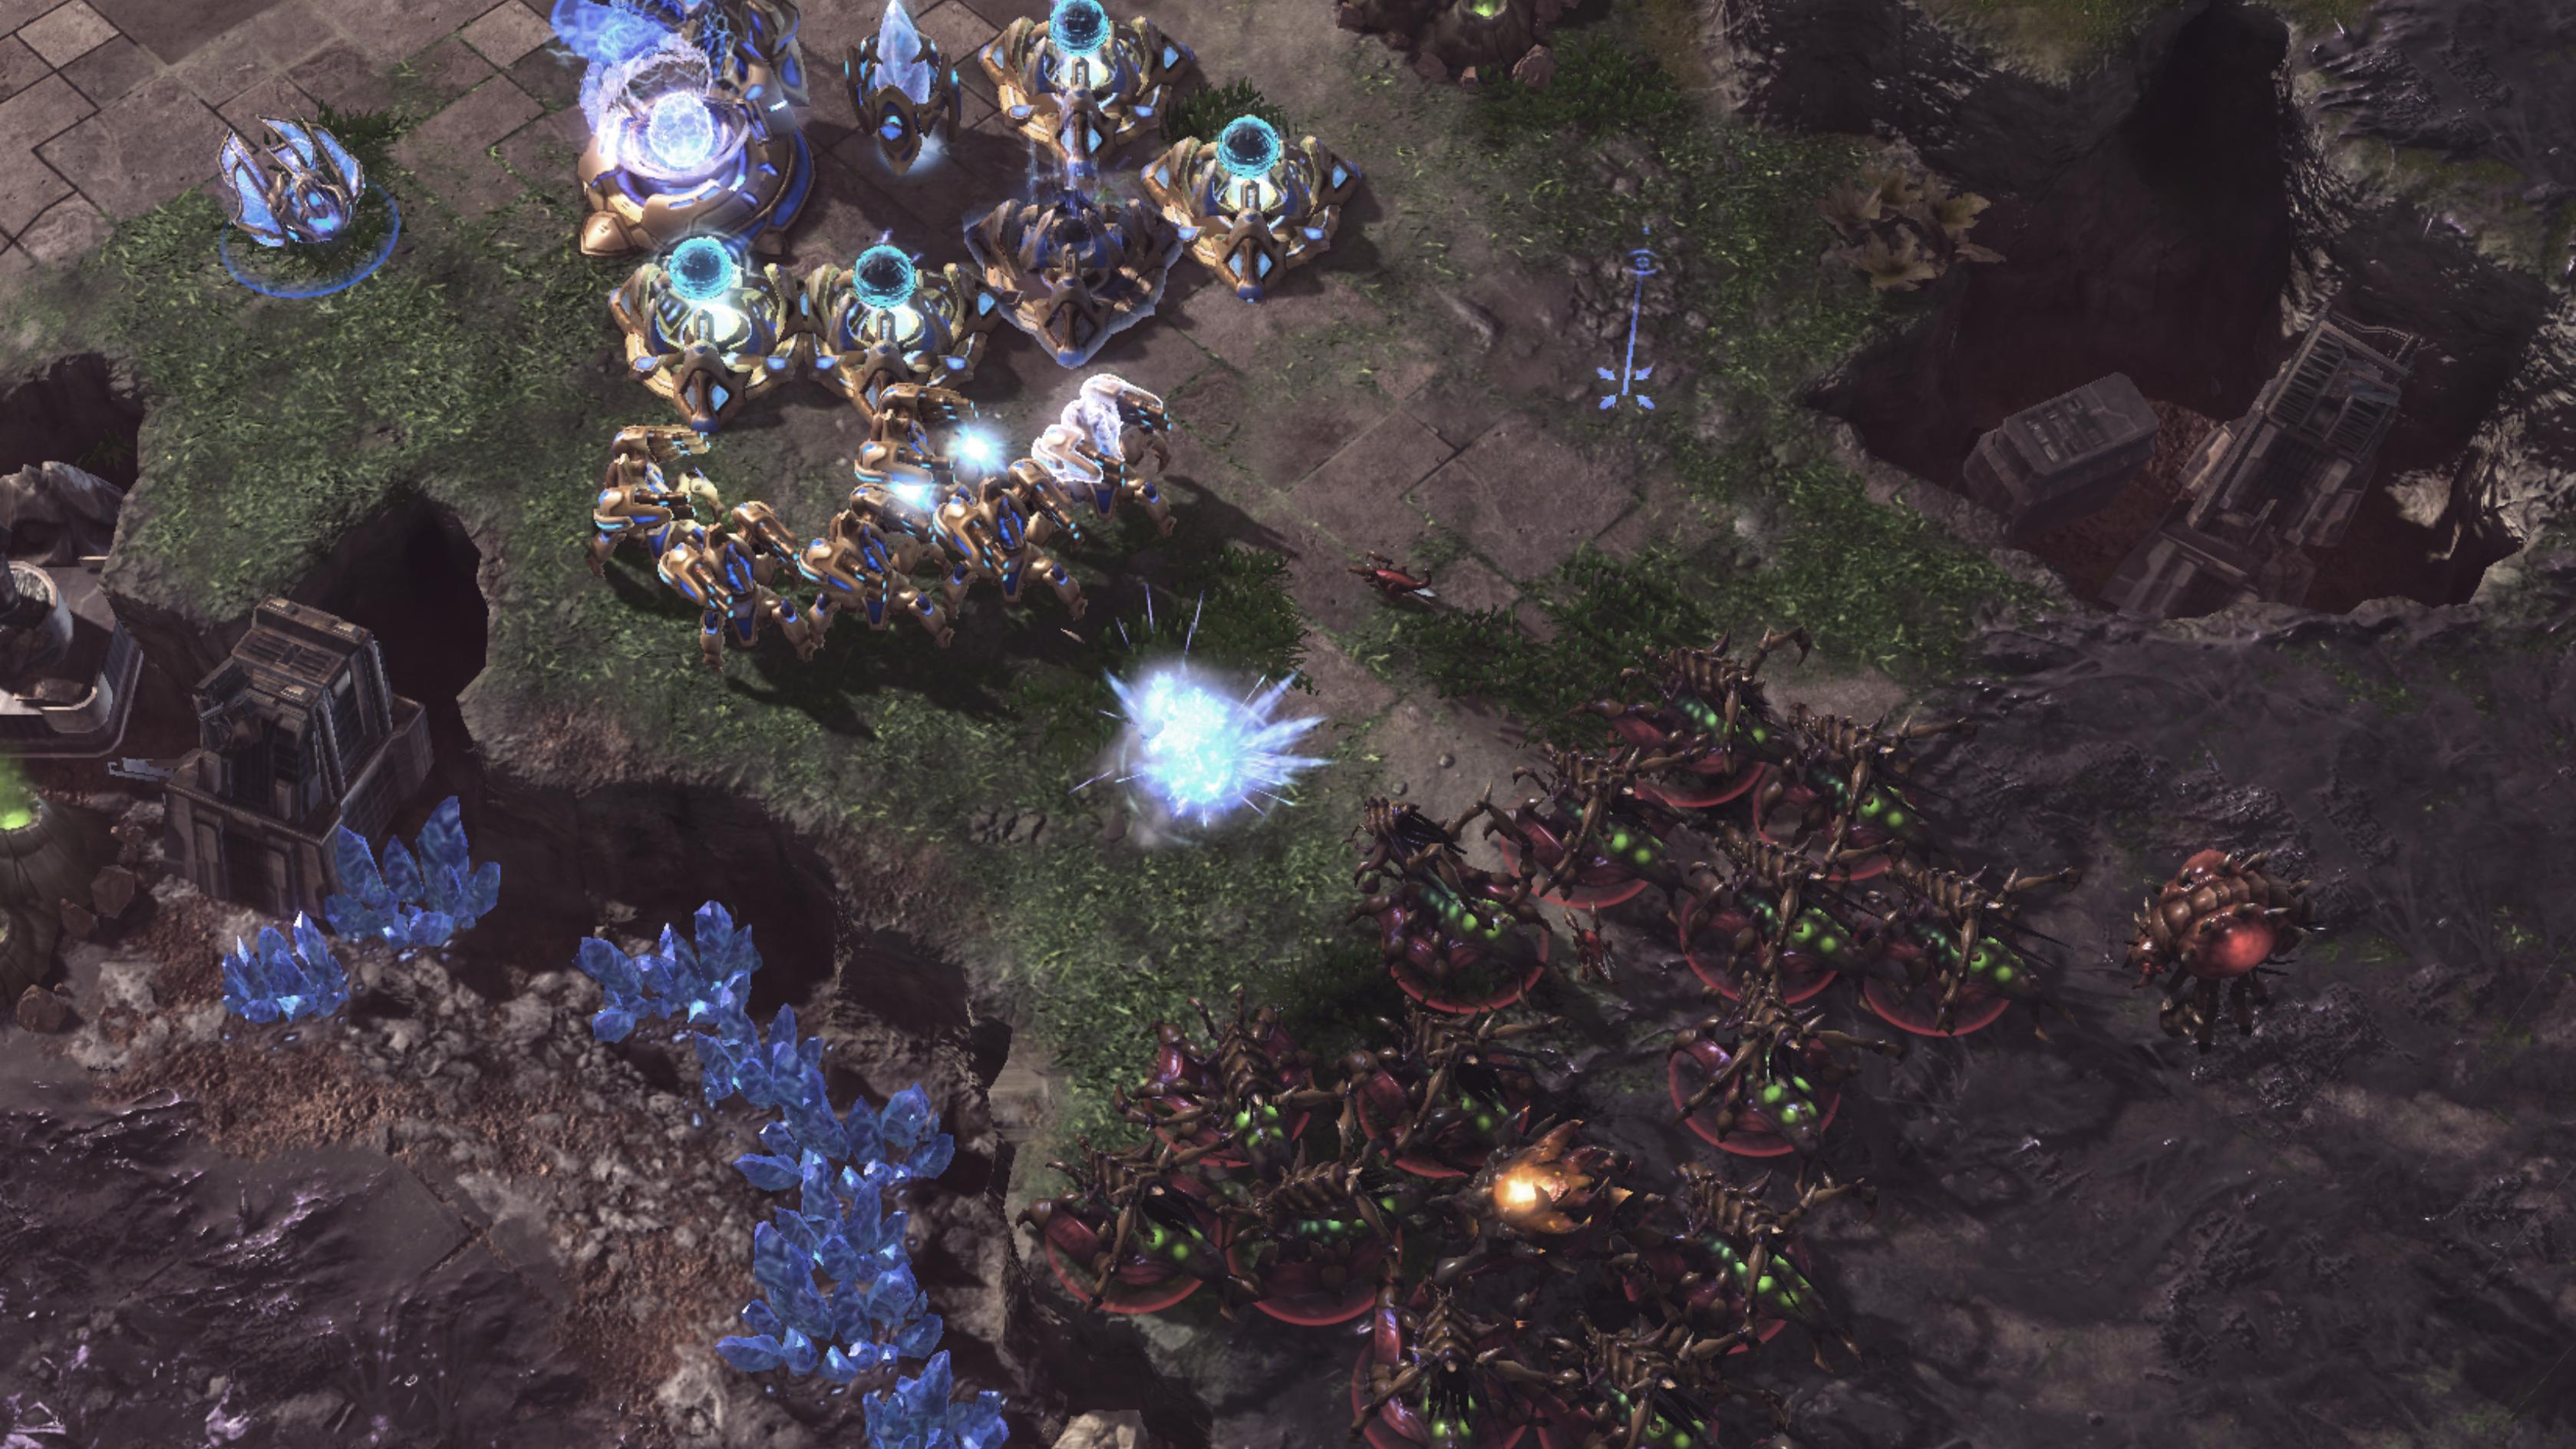 DeepMind's AI has now outcompeted nearly all human players at StarCraft II